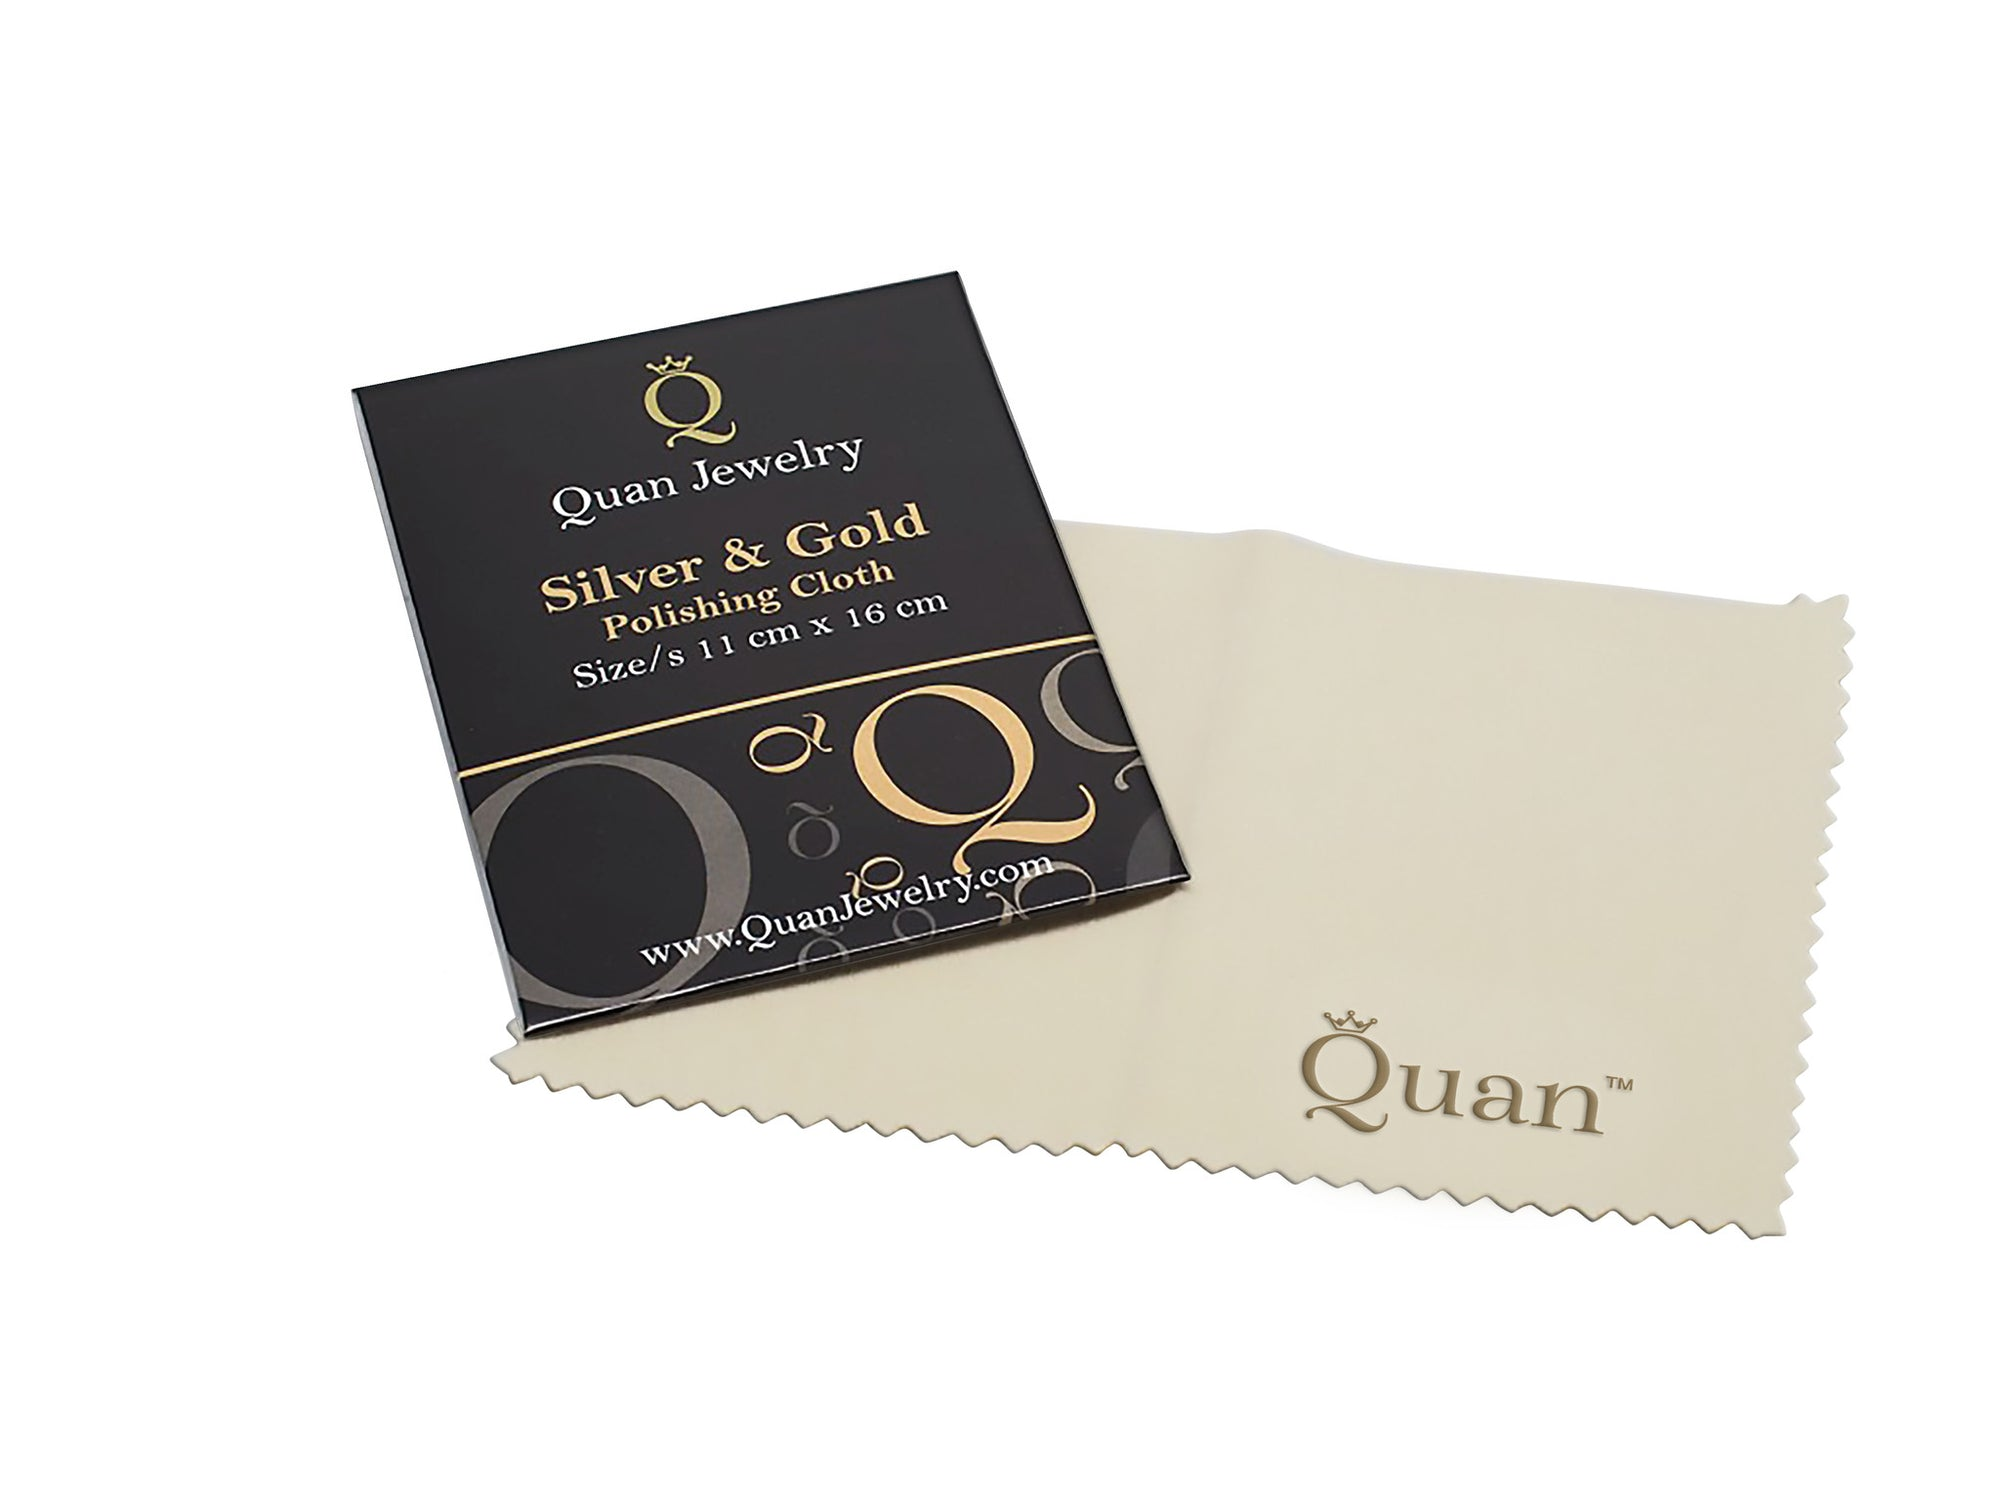 Quan Jewelry Silver Polishing Cloth